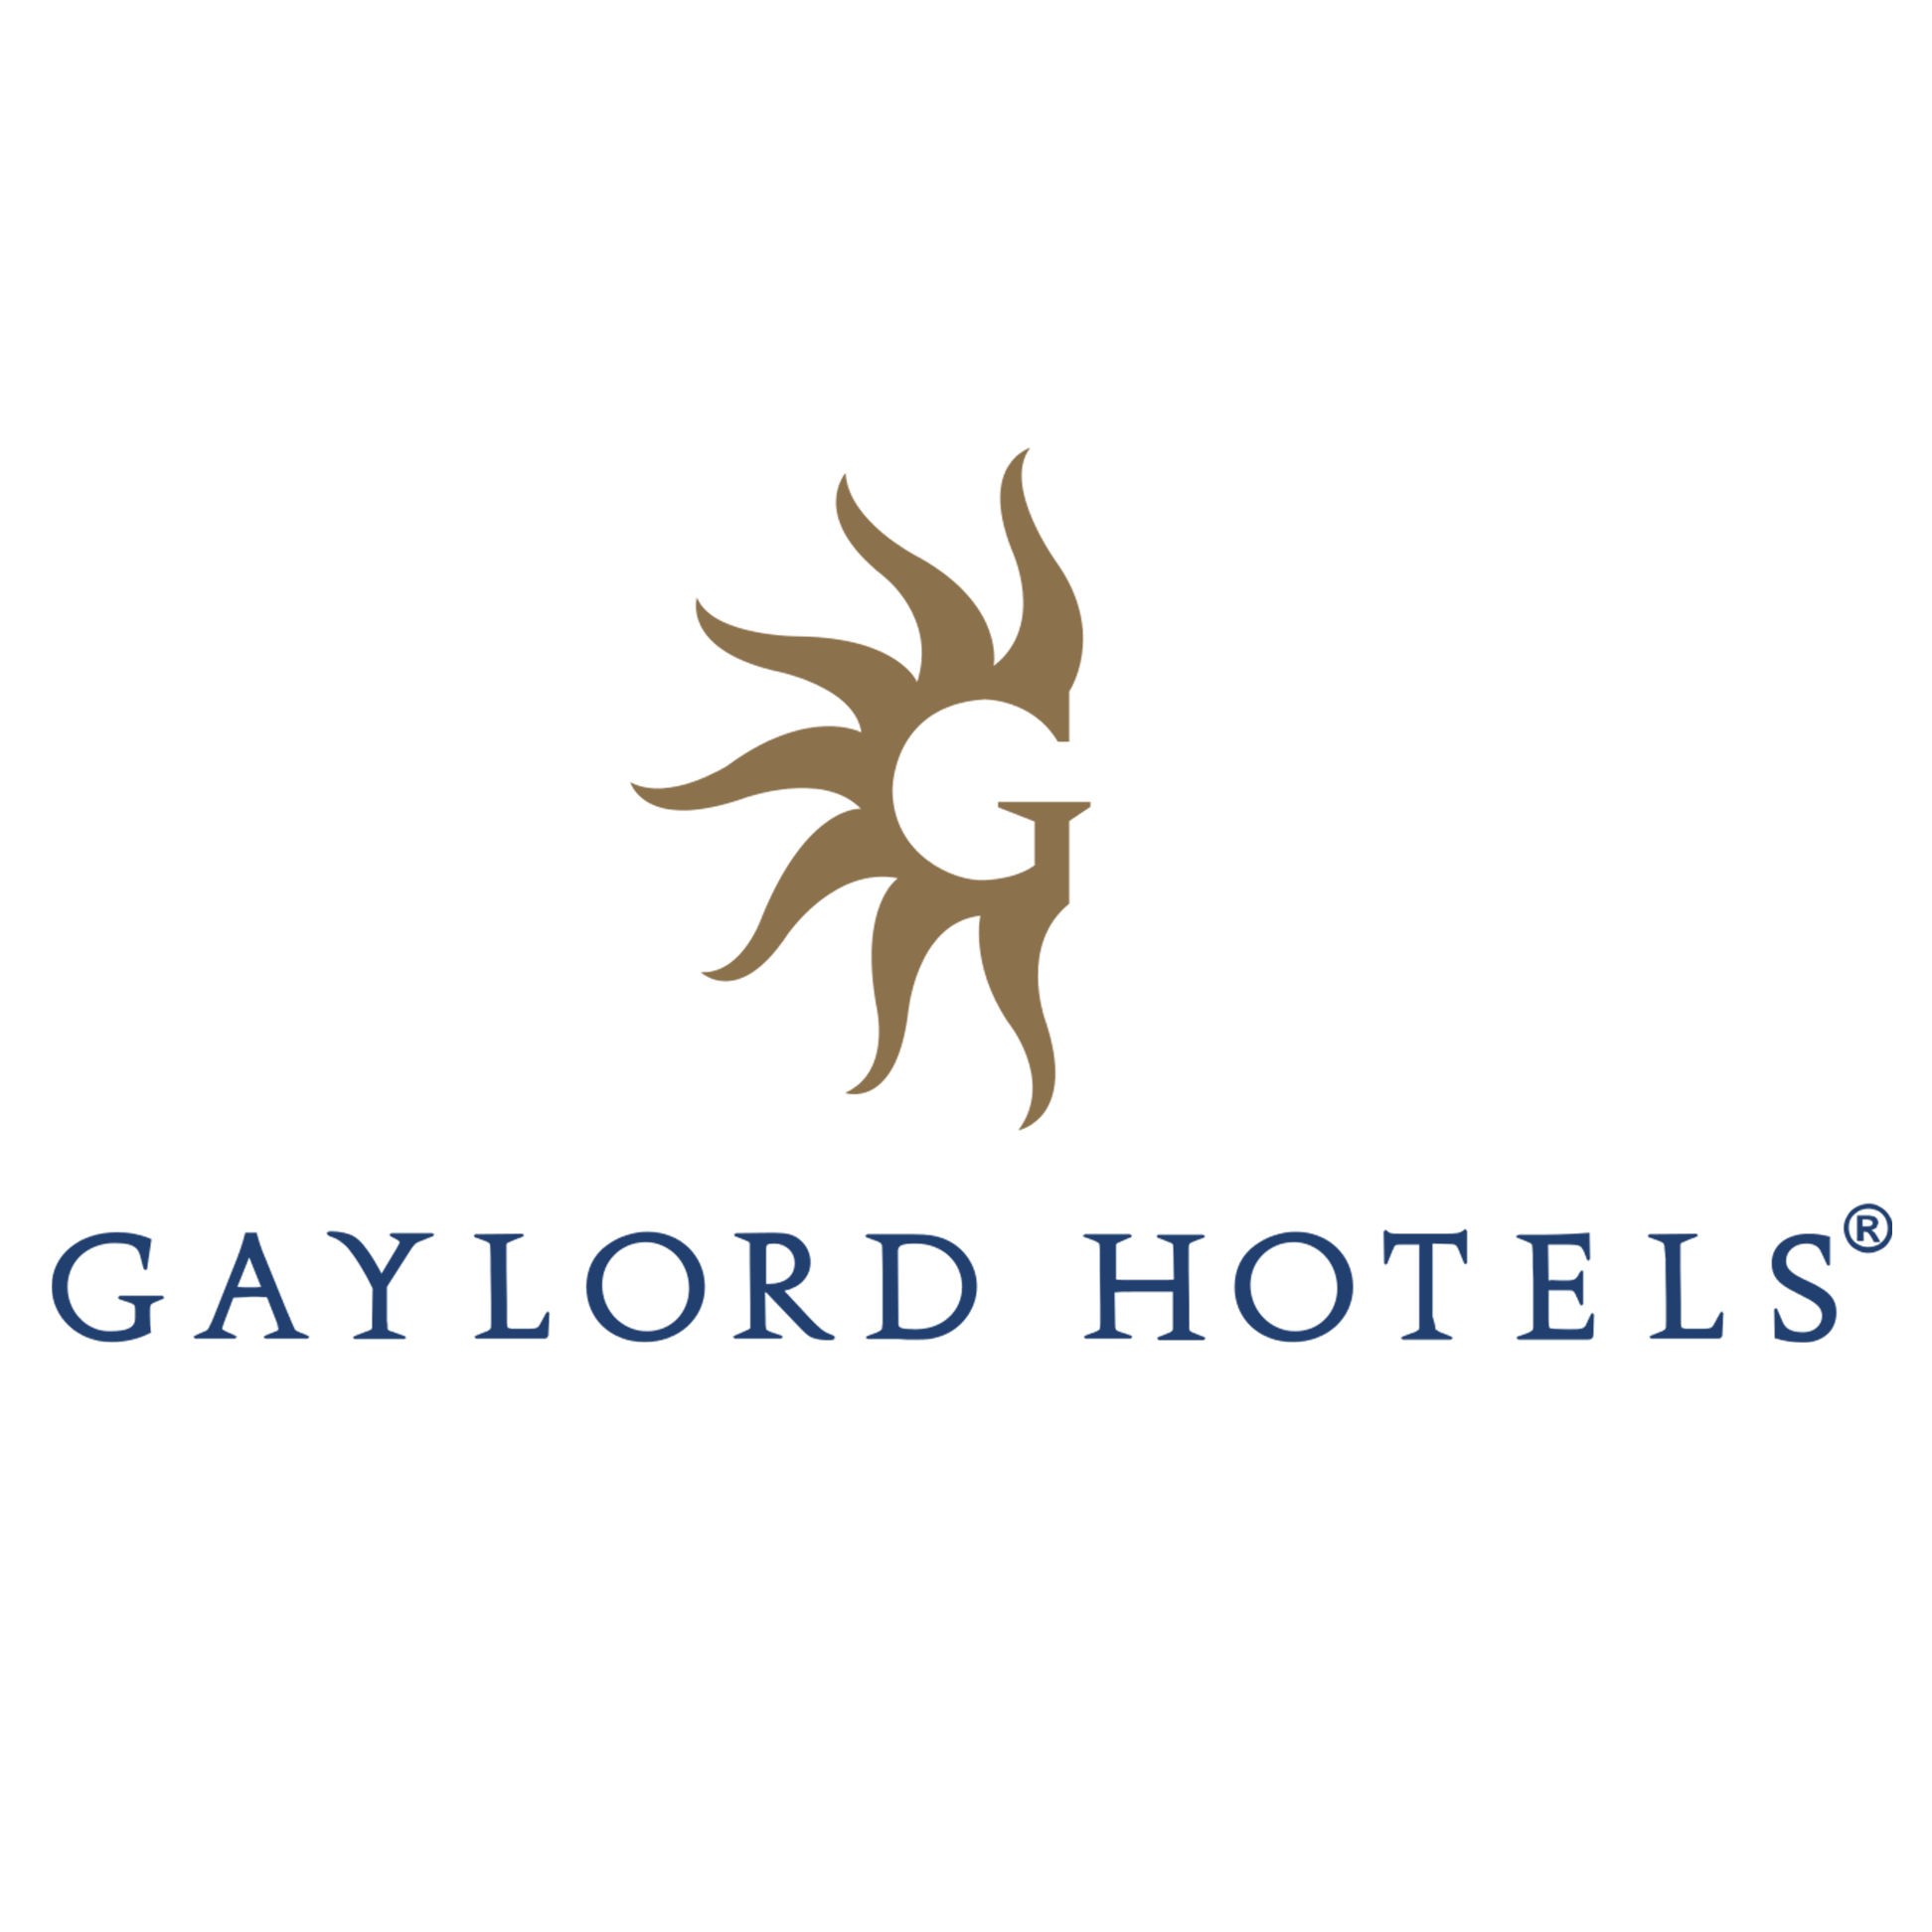 Logo of Gaylord Hotels